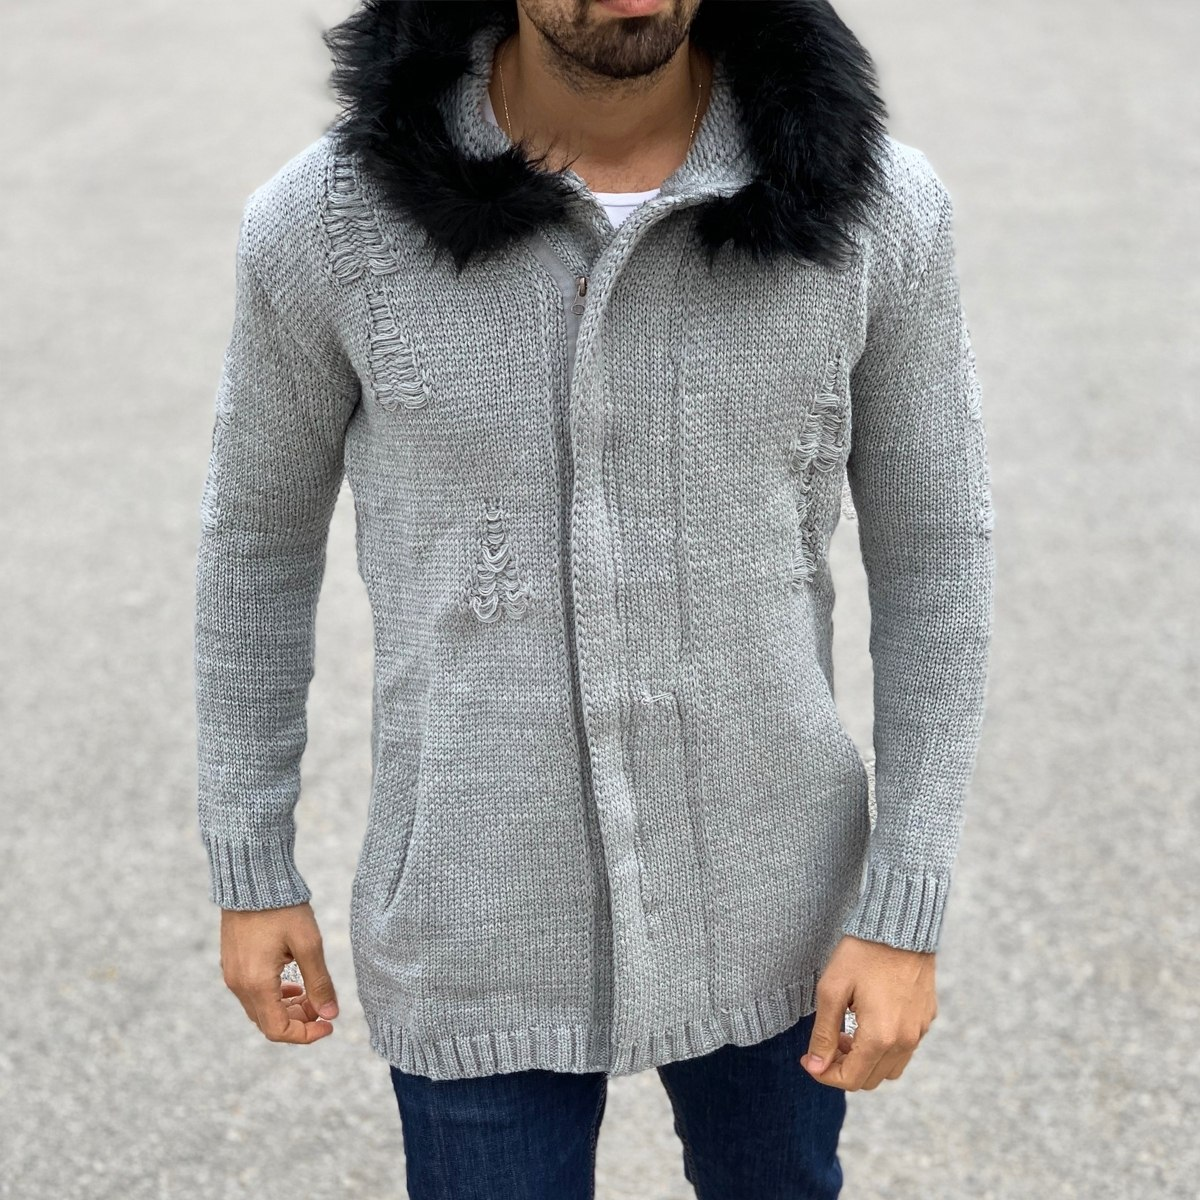 Cardigan Hoodie with Furry Hood and Worn Design in Grey